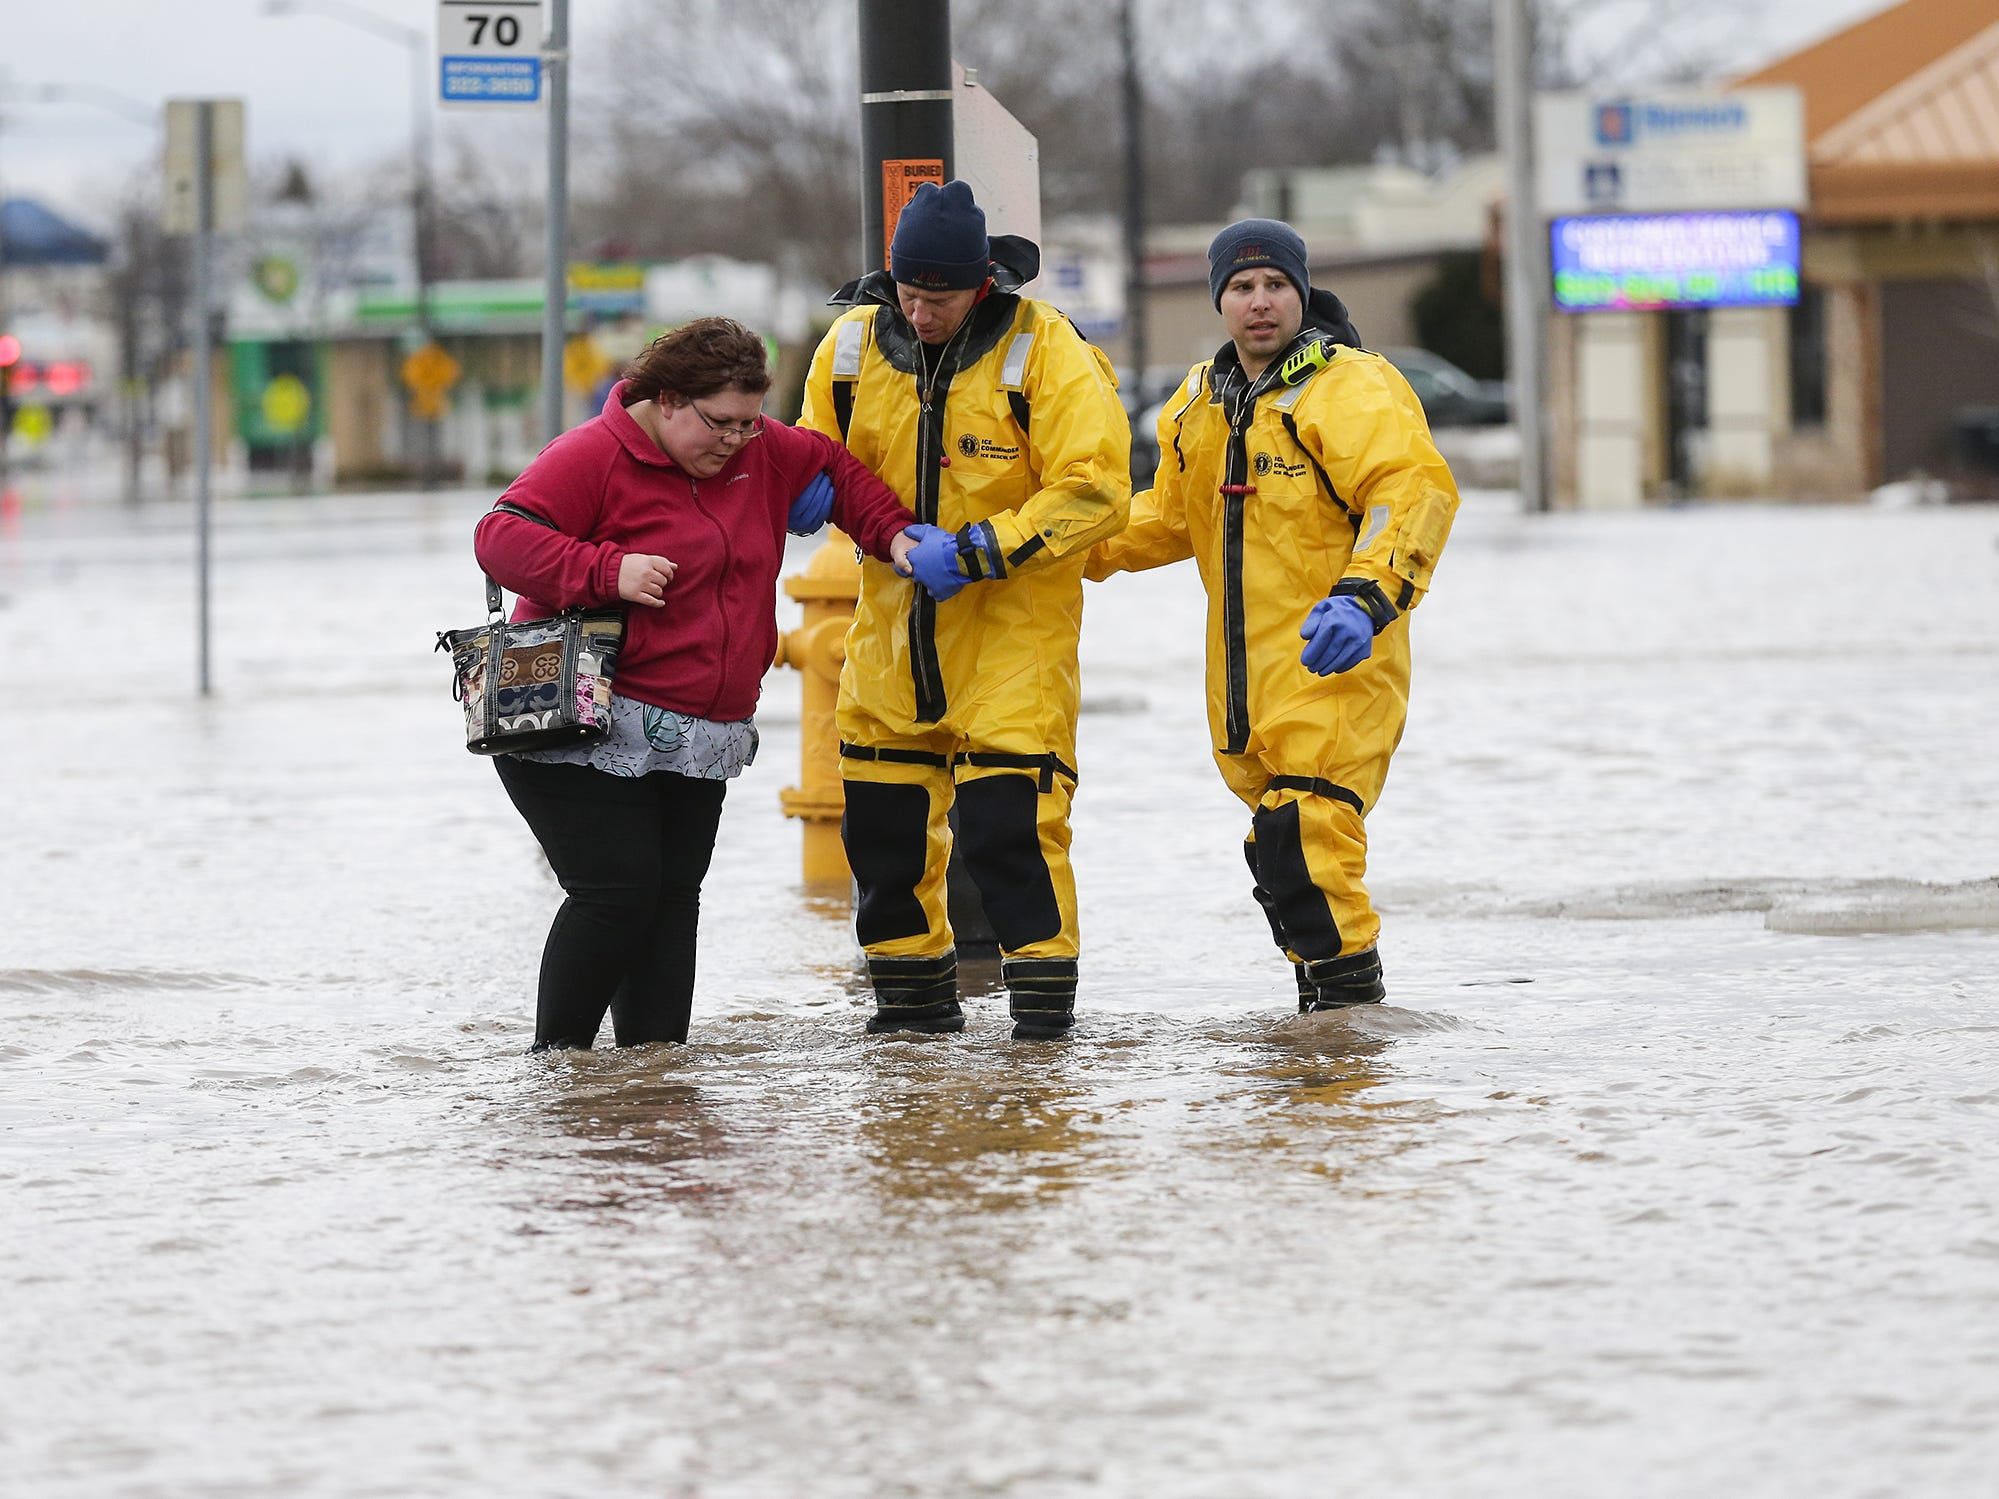 Mandi Mathews of Fond du Lac is helped out of a flooded area Thursday, March 14, 2019 on Johnson Street in Fond du Lac, Wis. Ice jams on the east branch of the Fond du Lac River and heavy rain caused widespread flooding problems in the city. Doug Raflik/USA TODAY NETWORK-Wisconsin